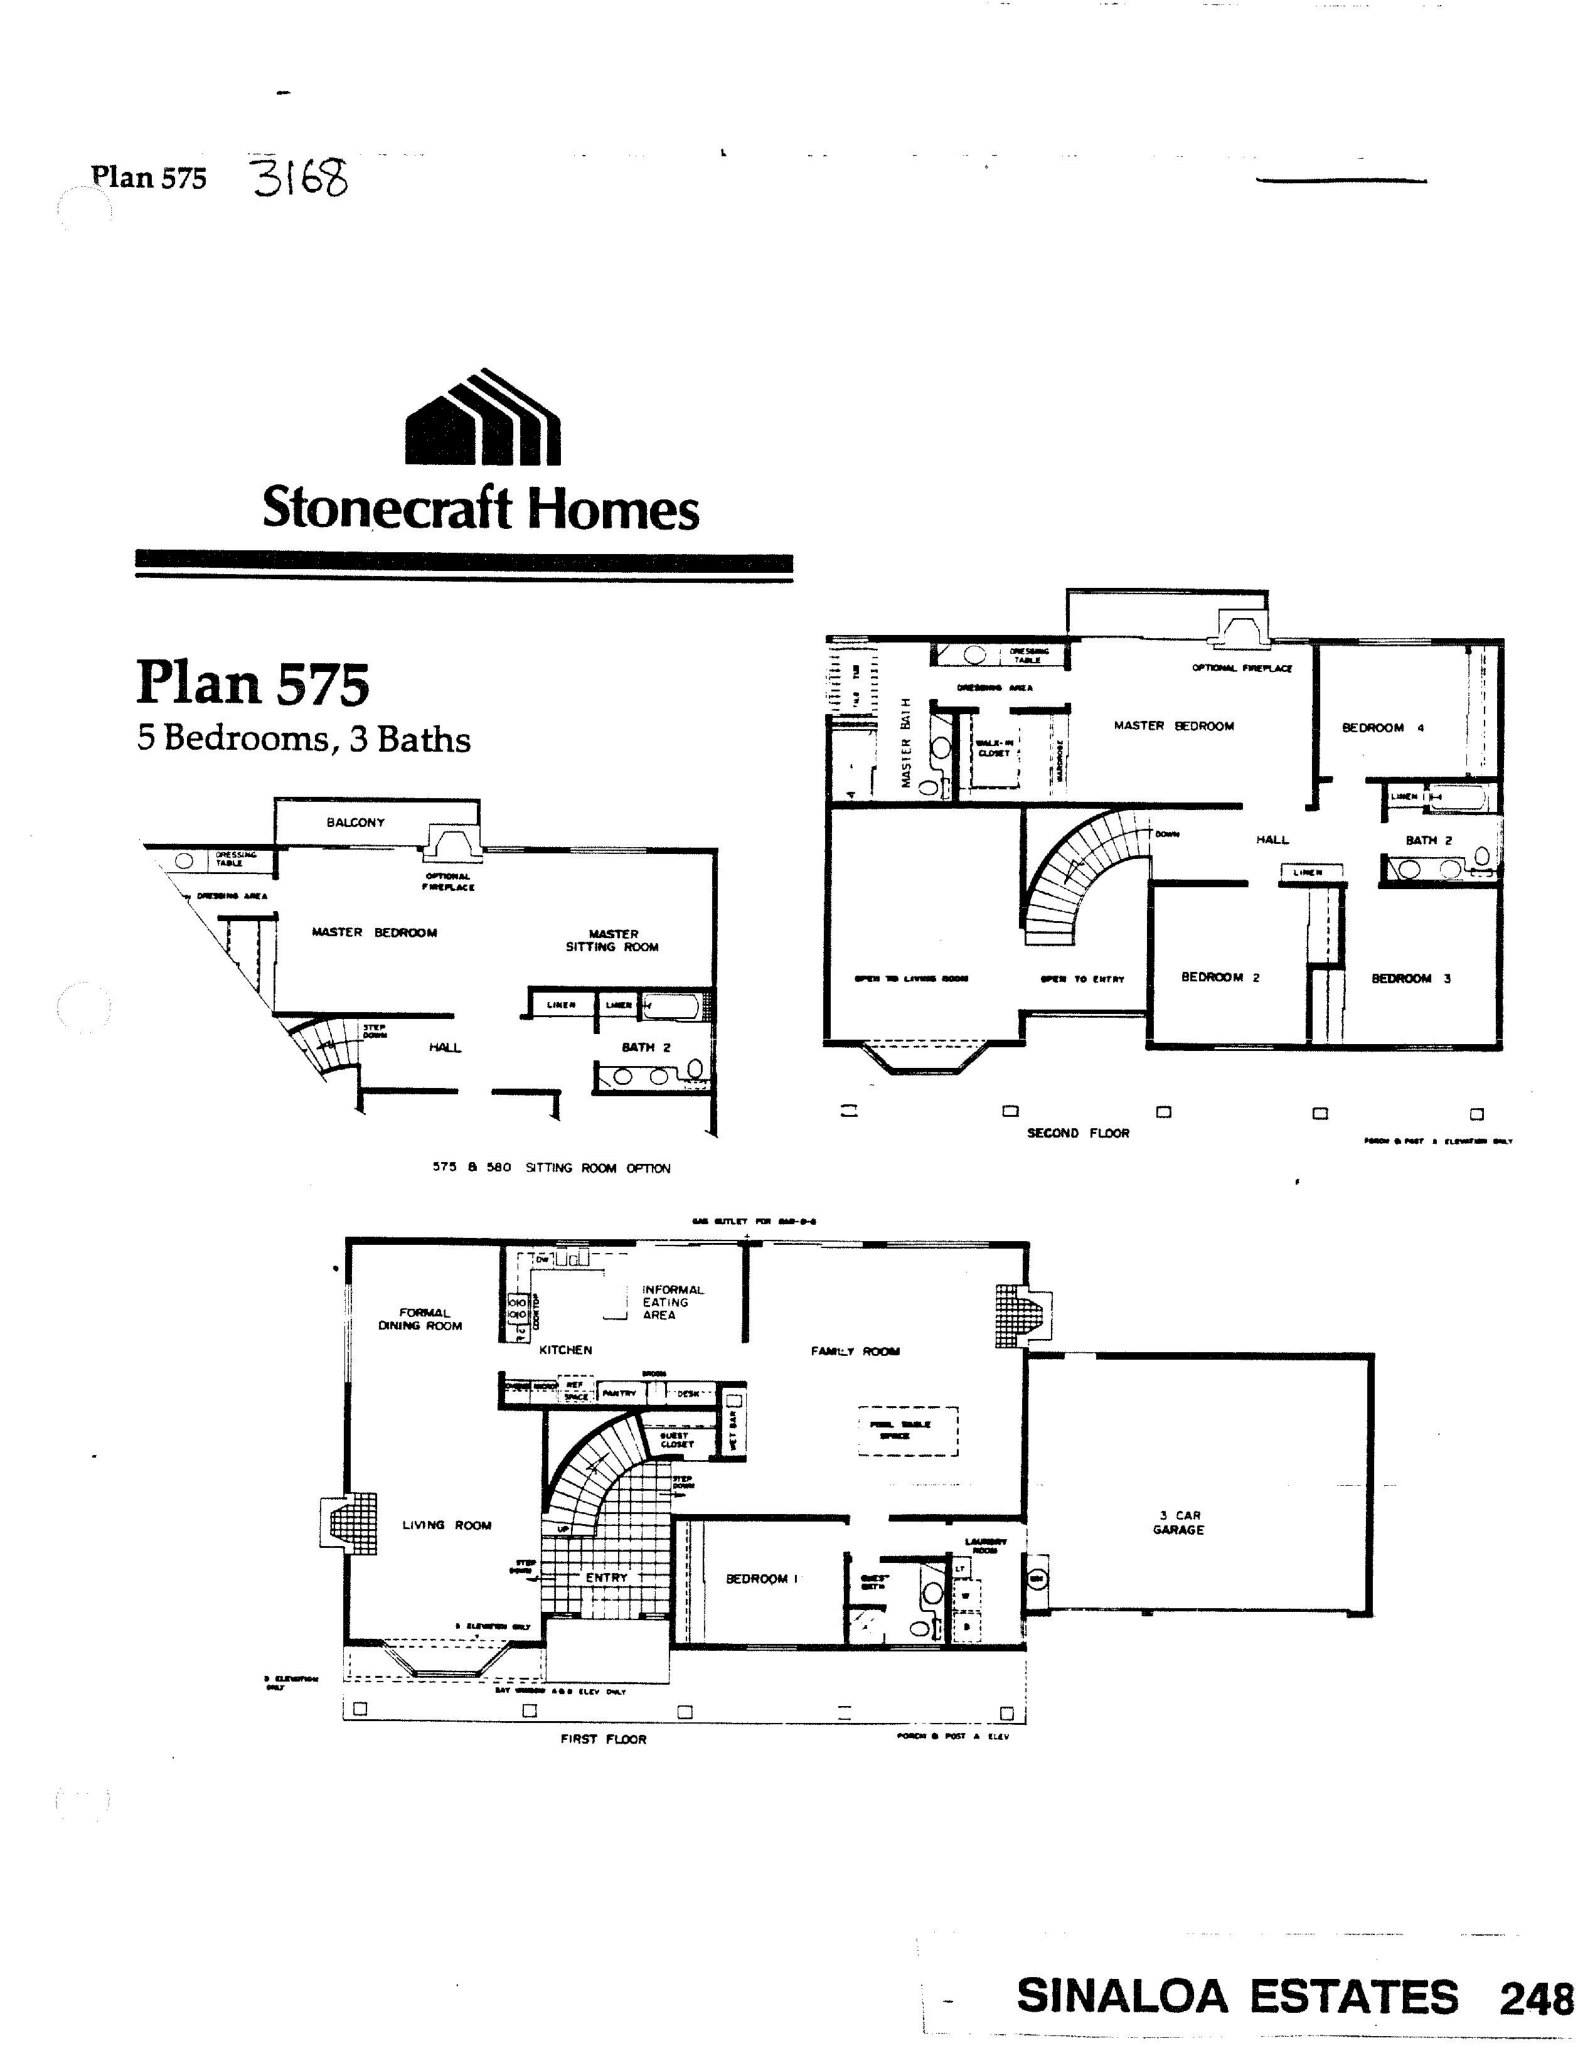 Sinaloa Estates - Plan 575